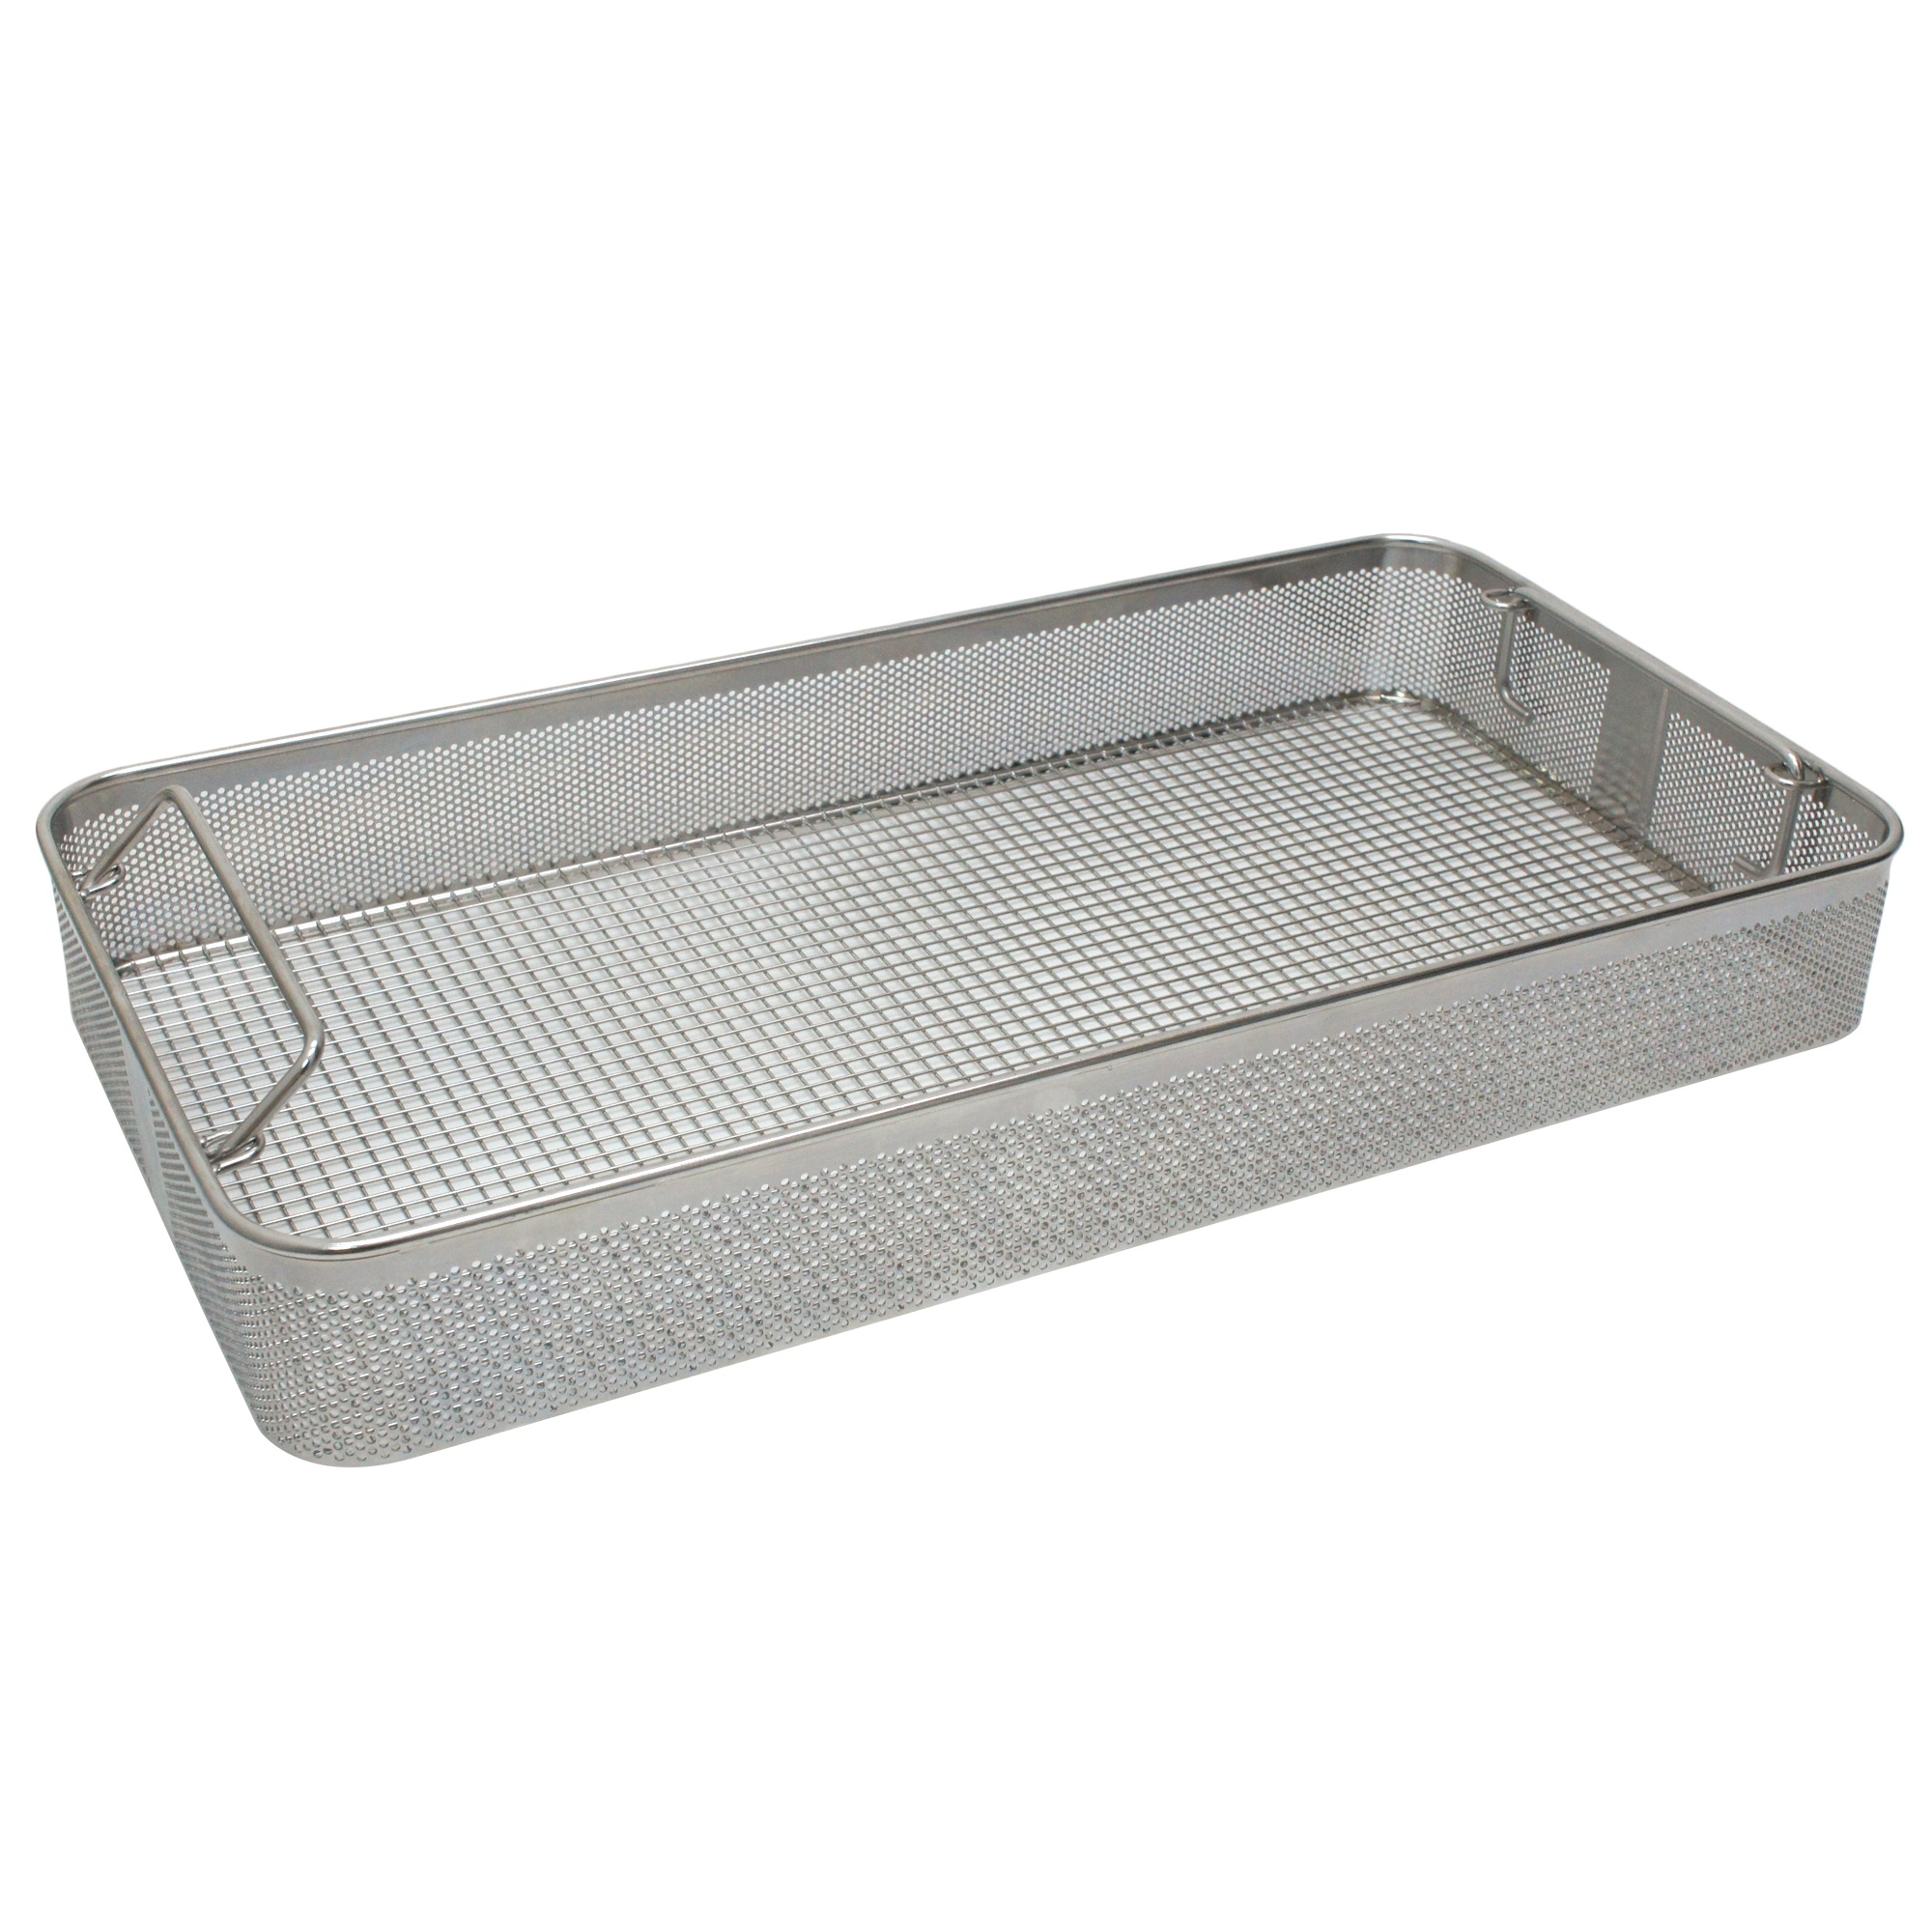 Perforated Plate Mesh Tray Image